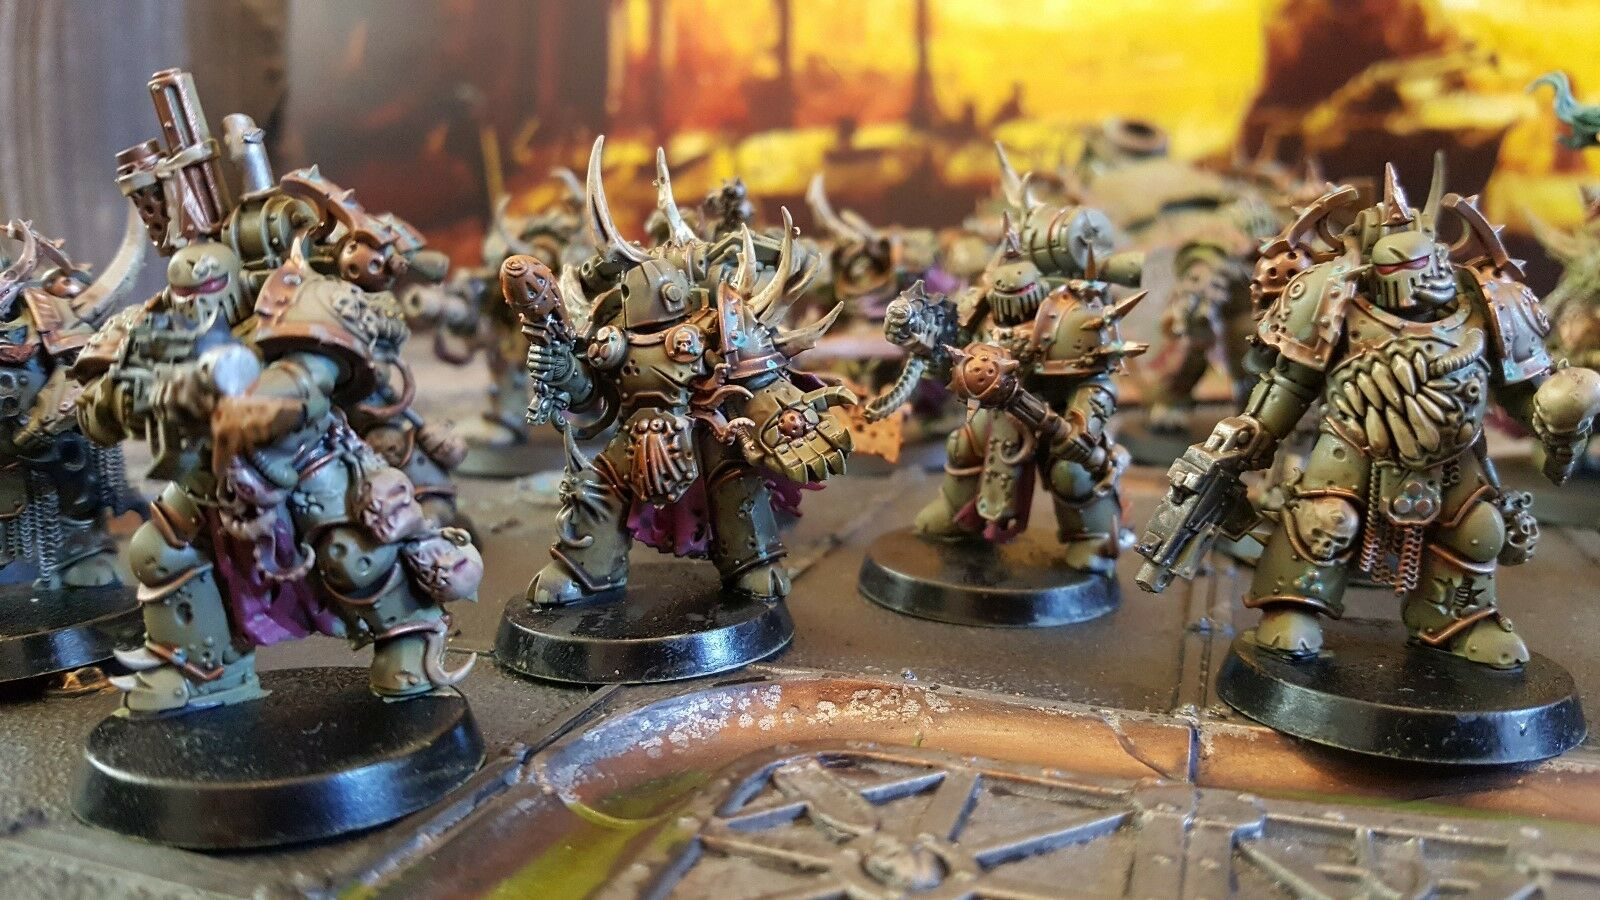 Warhammer 40k Pro painted death guard chaos space marines made to order